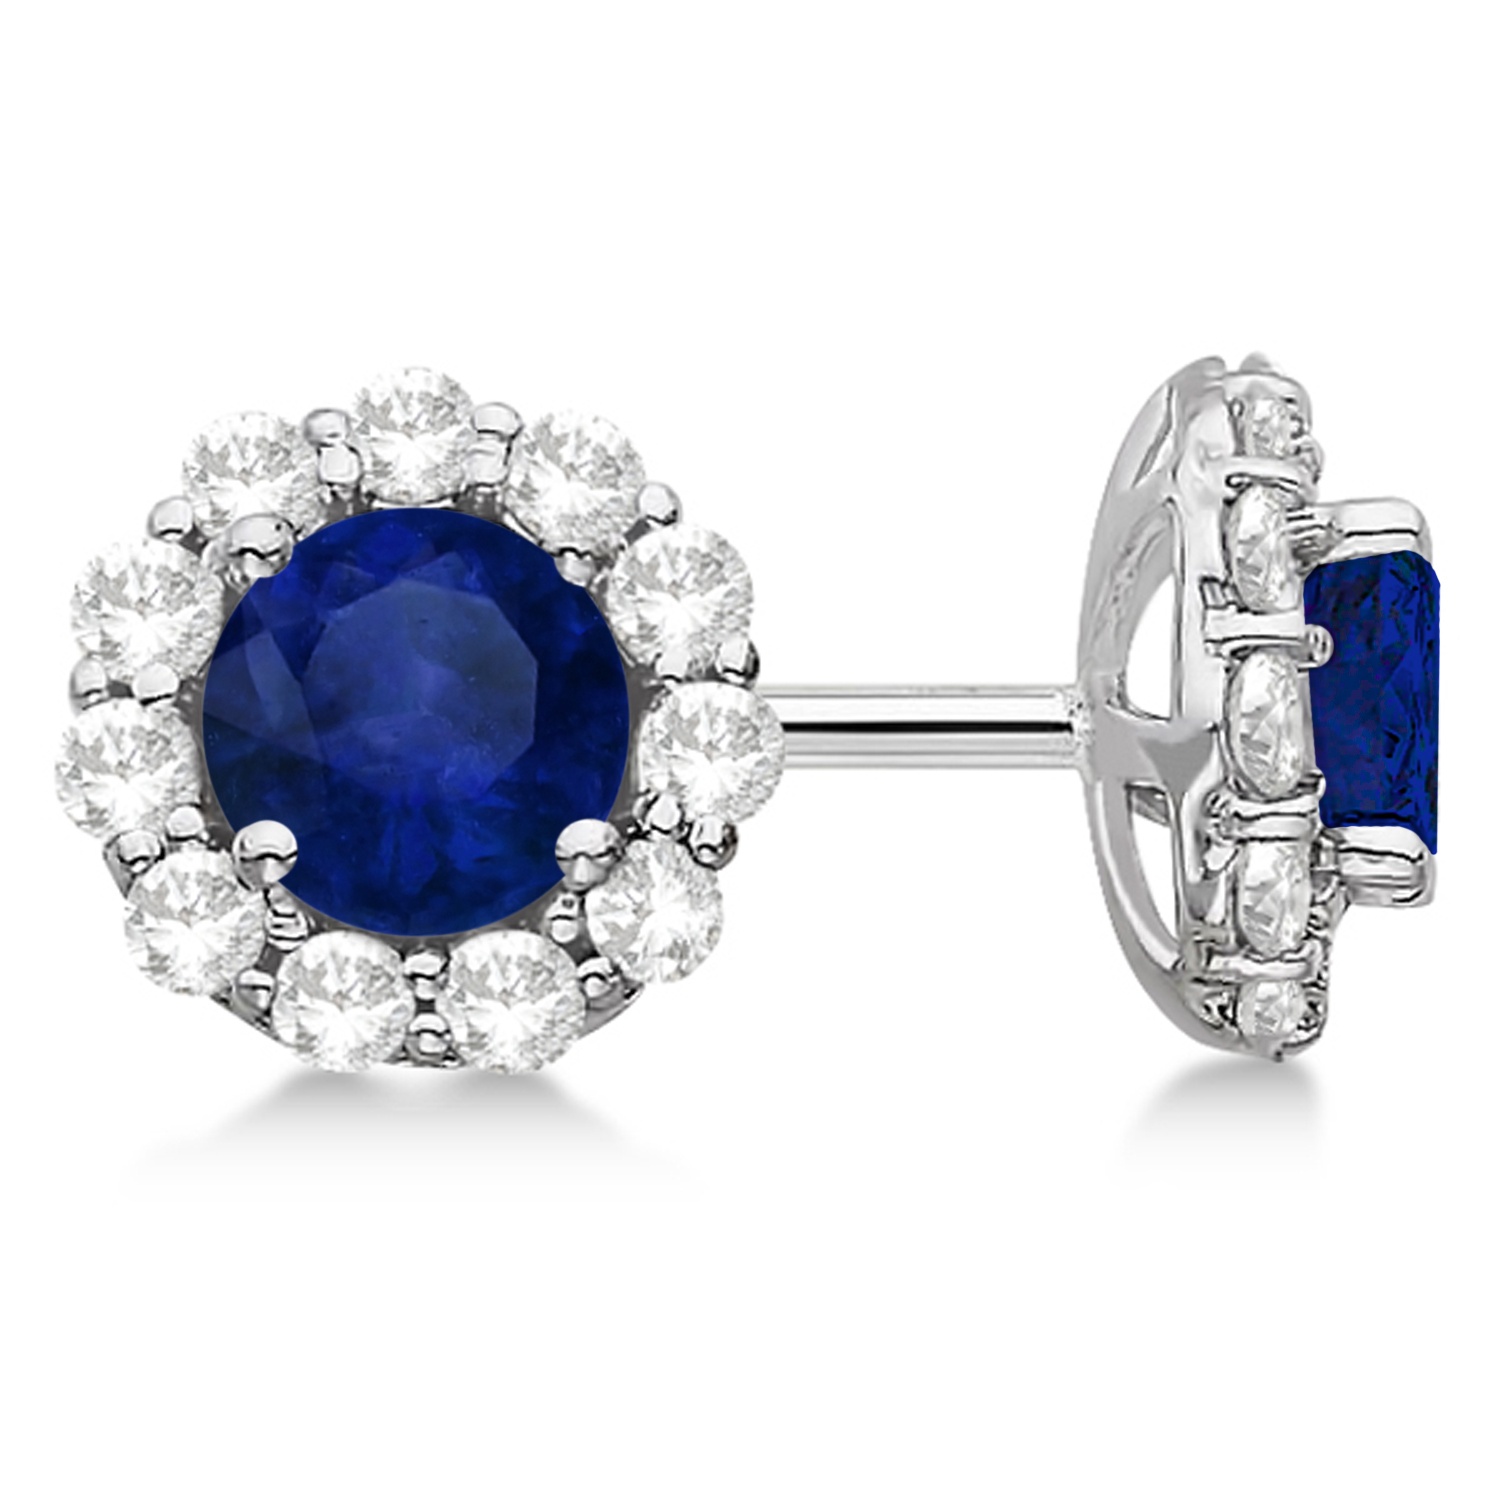 sapphire earrings with diamonds halo blue sapphire stud earrings 14kt white gold 4383